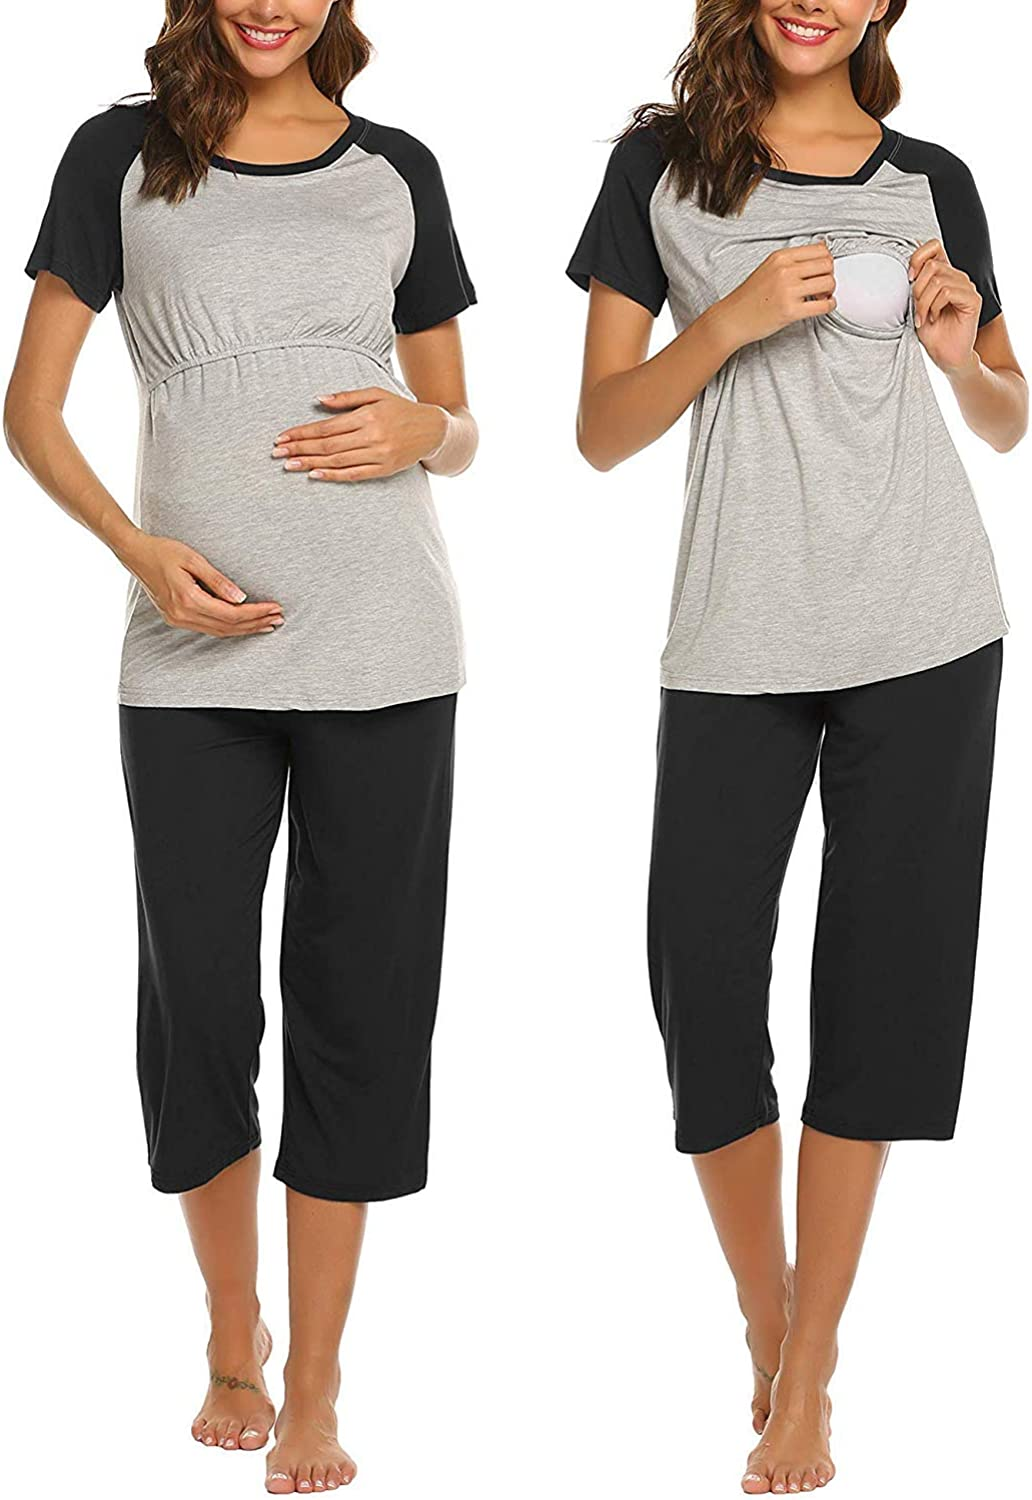 Ekouaer Double Layers Labor/Delivery/Nursing Maternity Pajamas Capri Set for Hospital Home, Baseball Shirt,Adjustable Size